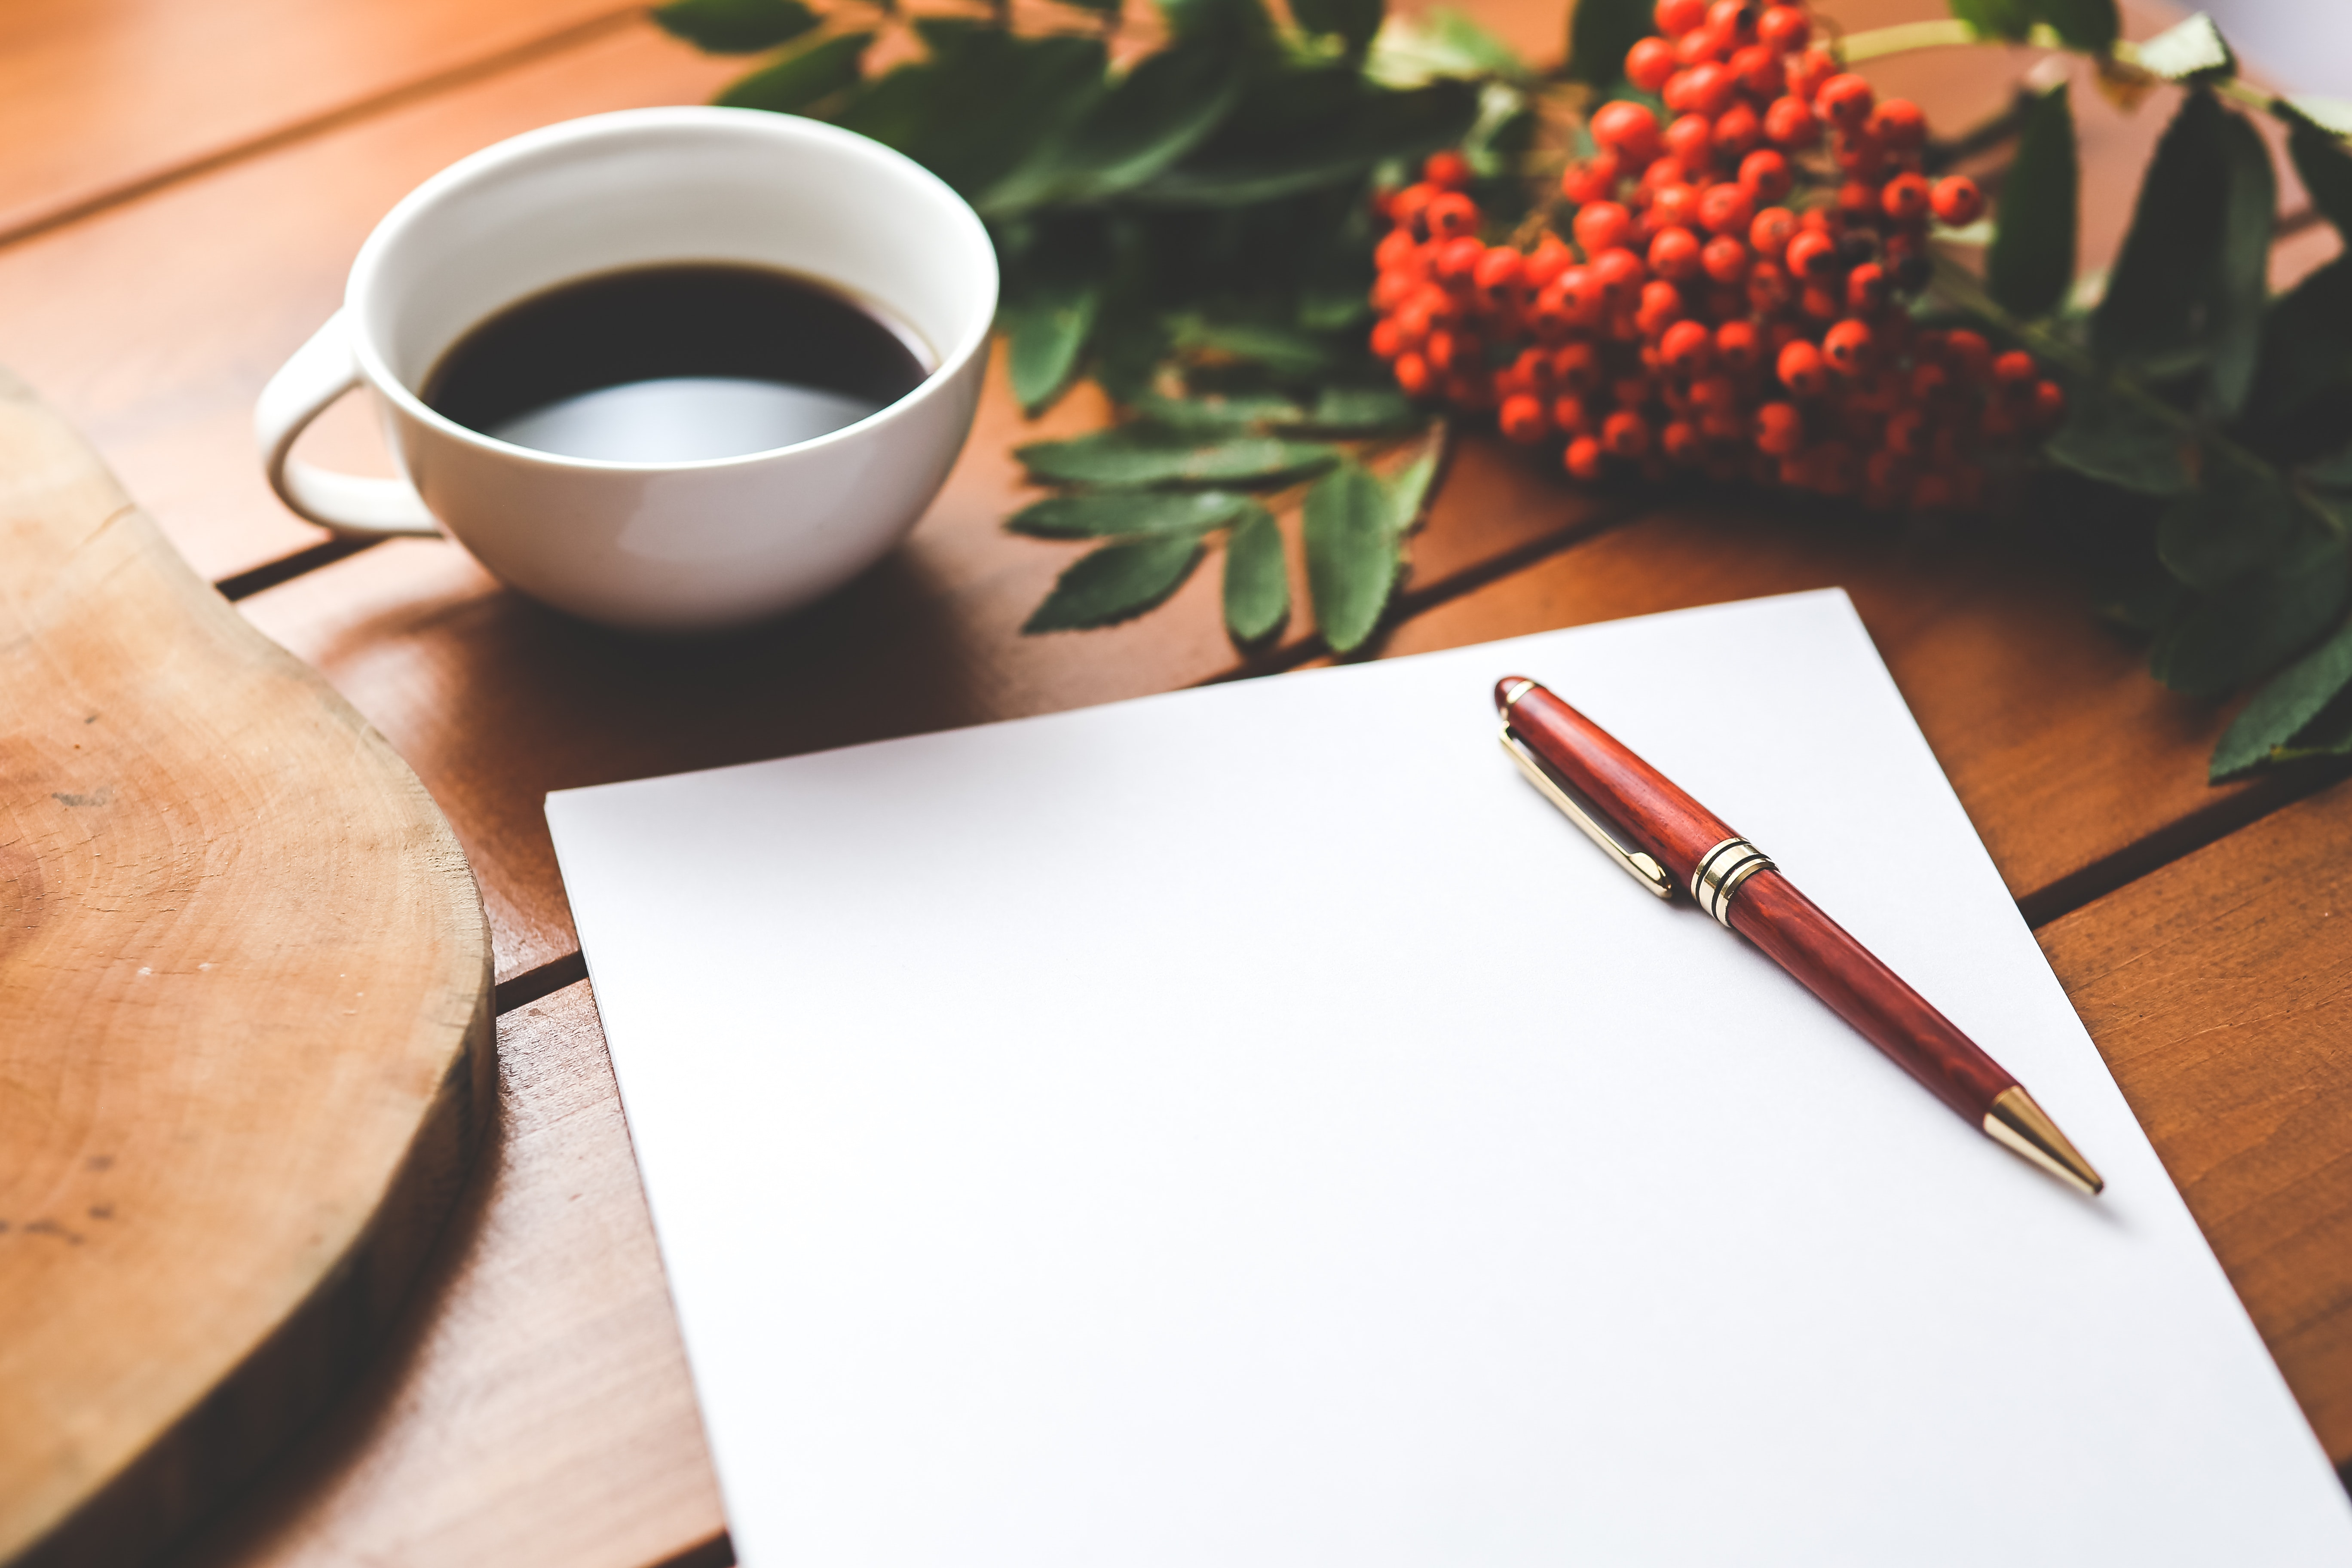 Blank paper with pen and coffee cup on wood table photo